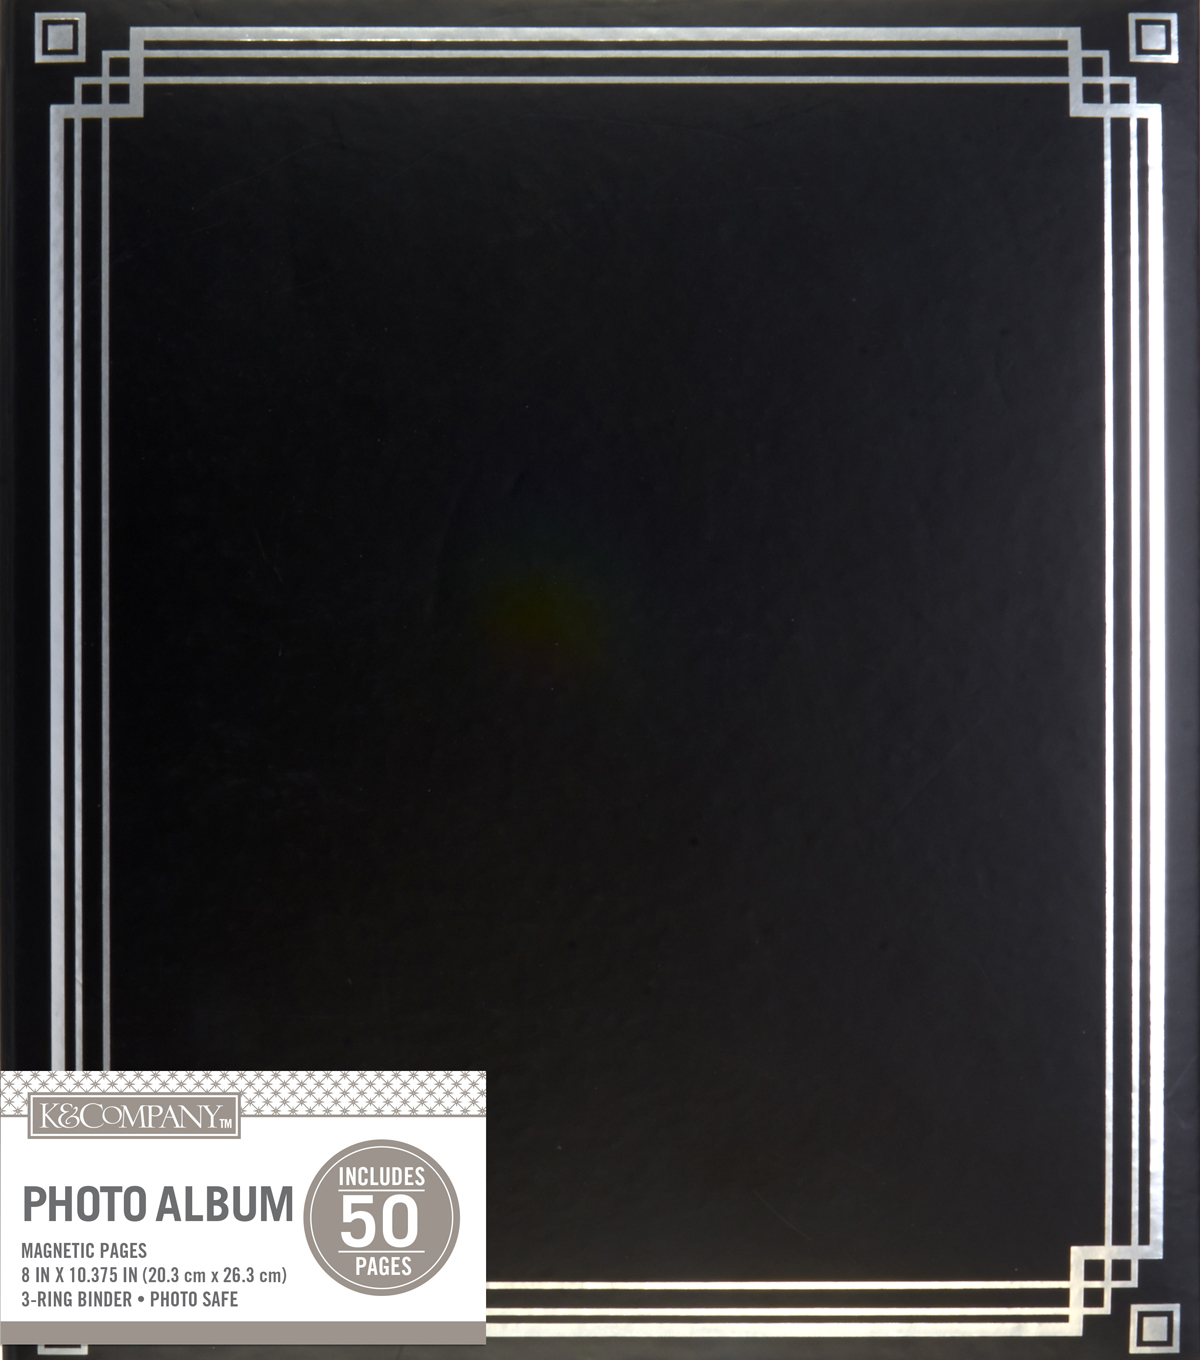 K&Company Black Library Binder Magnetic Photo Album